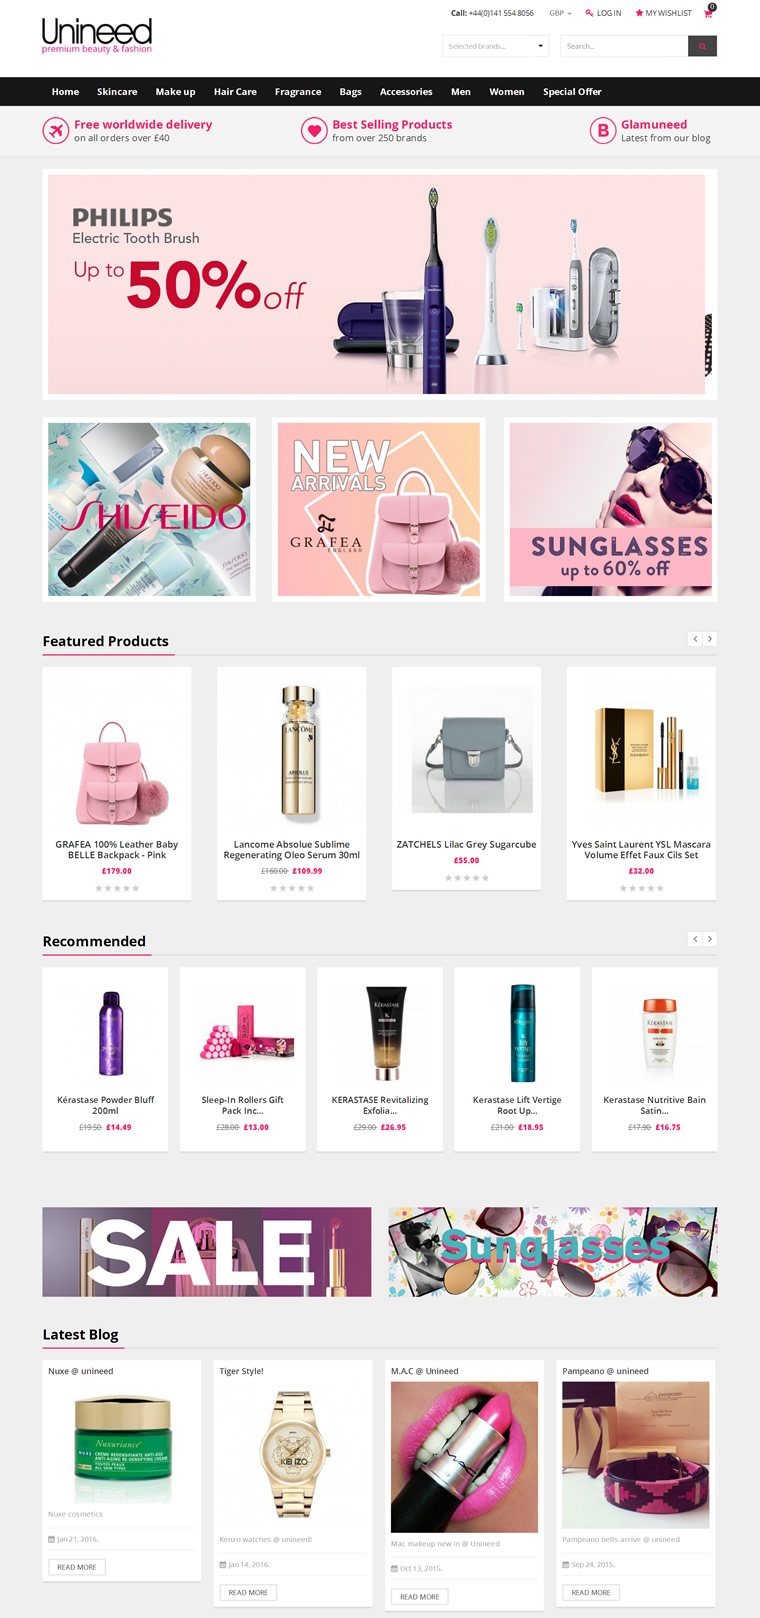 Unineed.com Home Page - Premium beauty and fashi